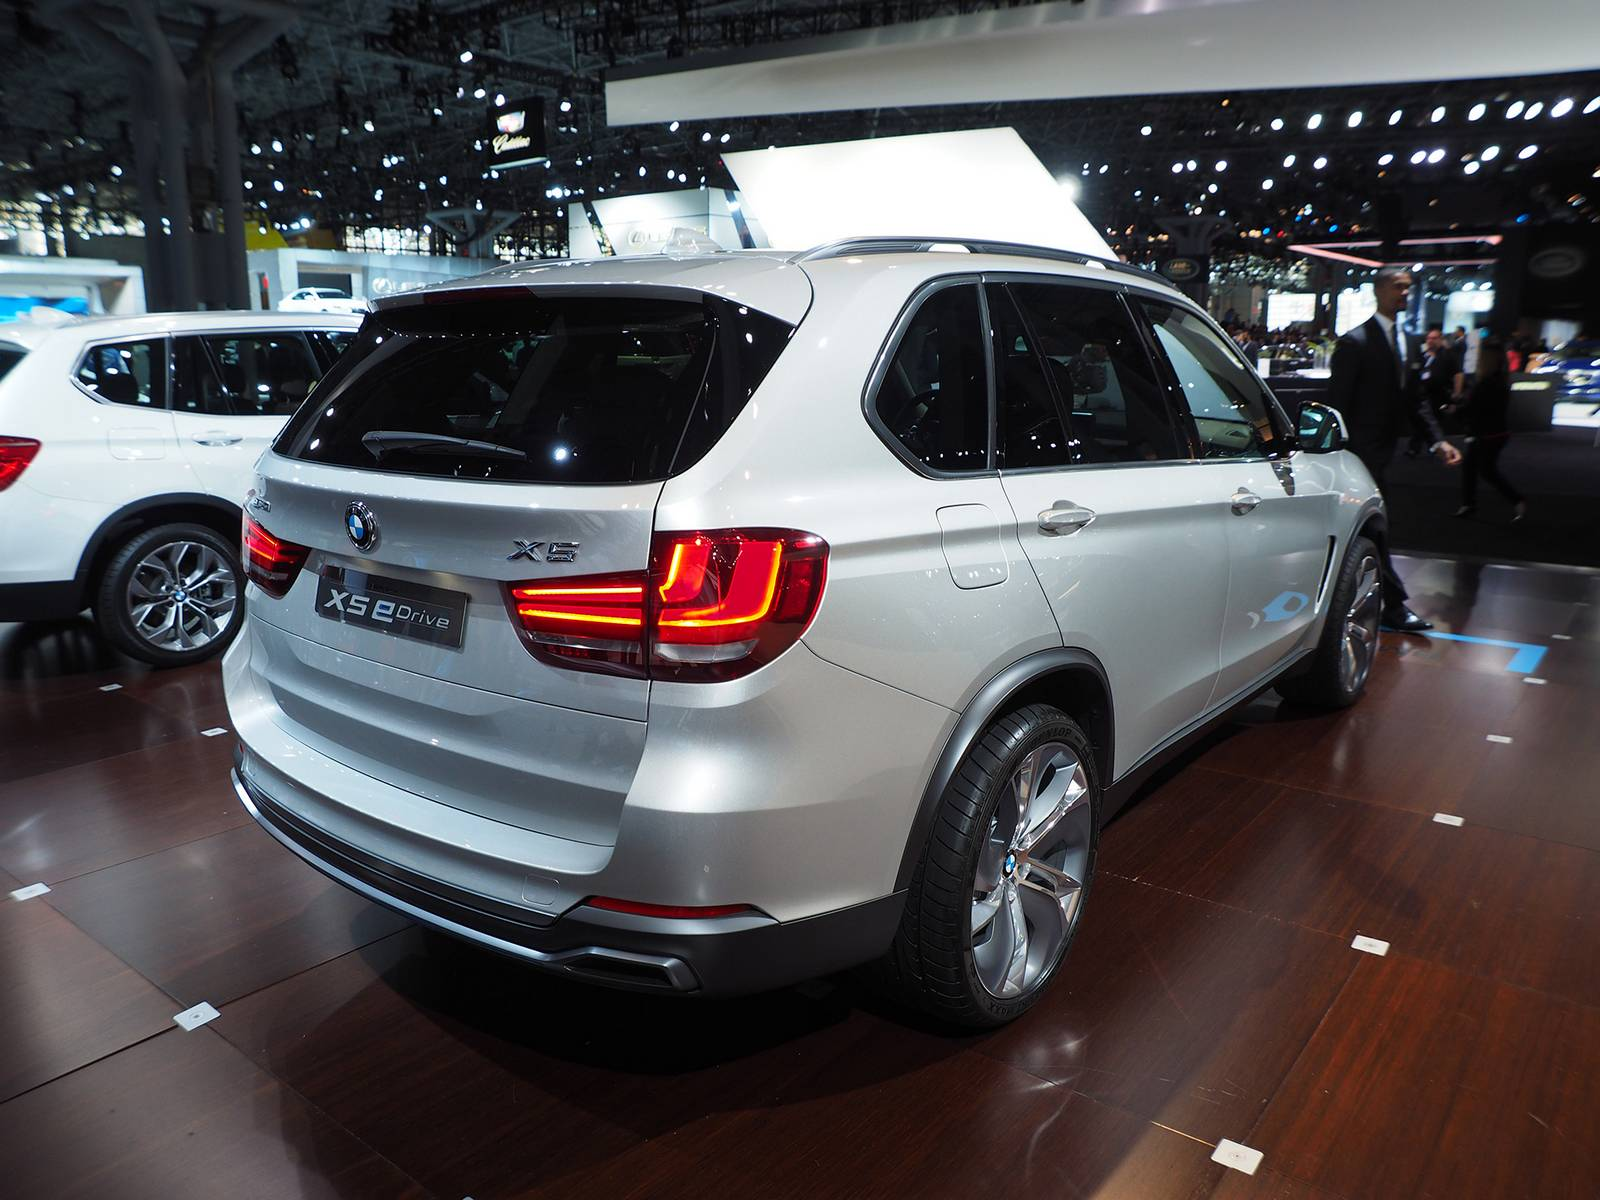 new york 2014 bmw x5 concept edrive gtspirit. Black Bedroom Furniture Sets. Home Design Ideas